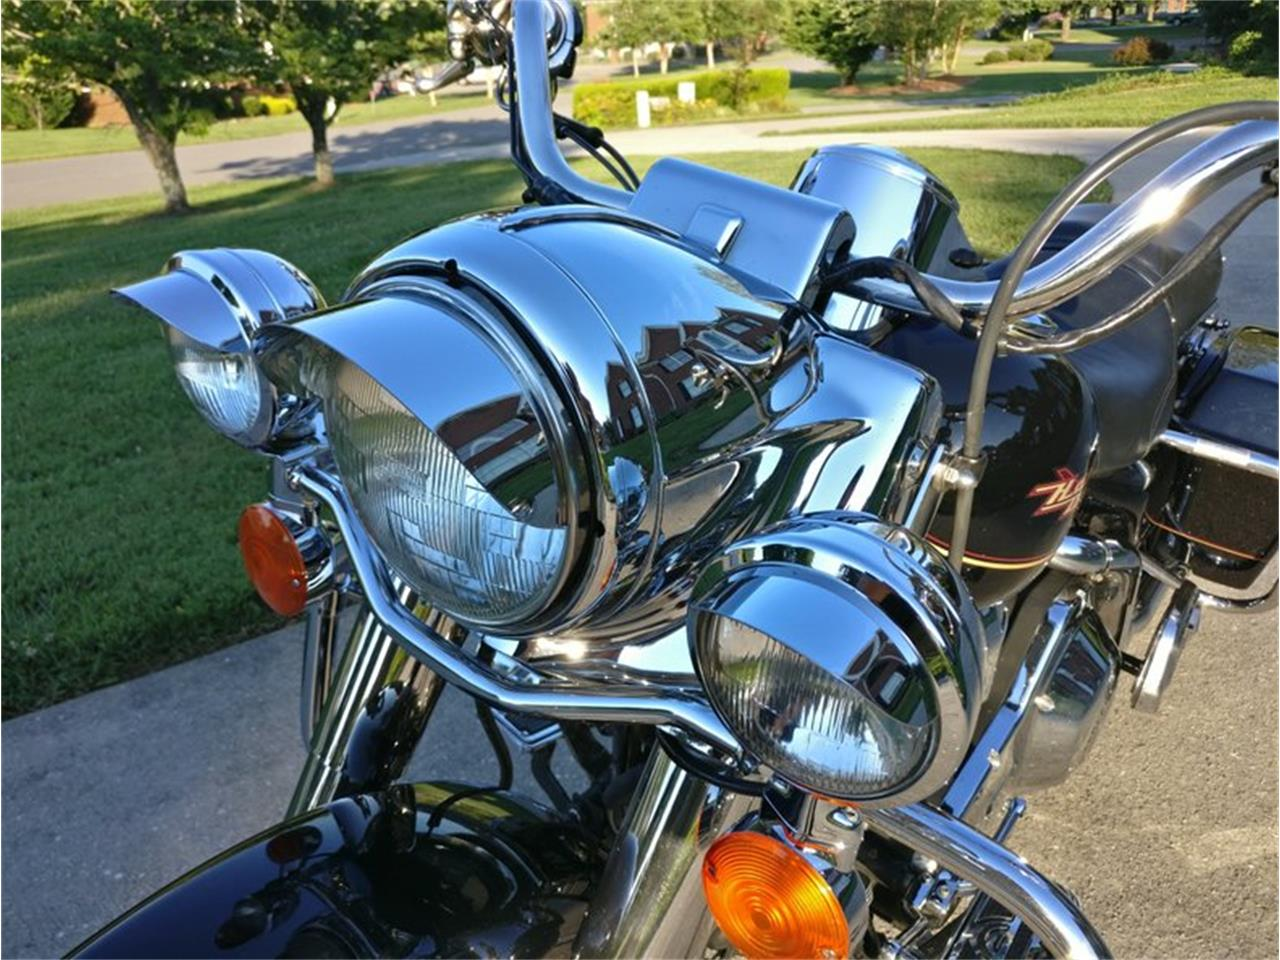 1998 Harley-Davidson Road King for sale in Cookeville, TN – photo 16